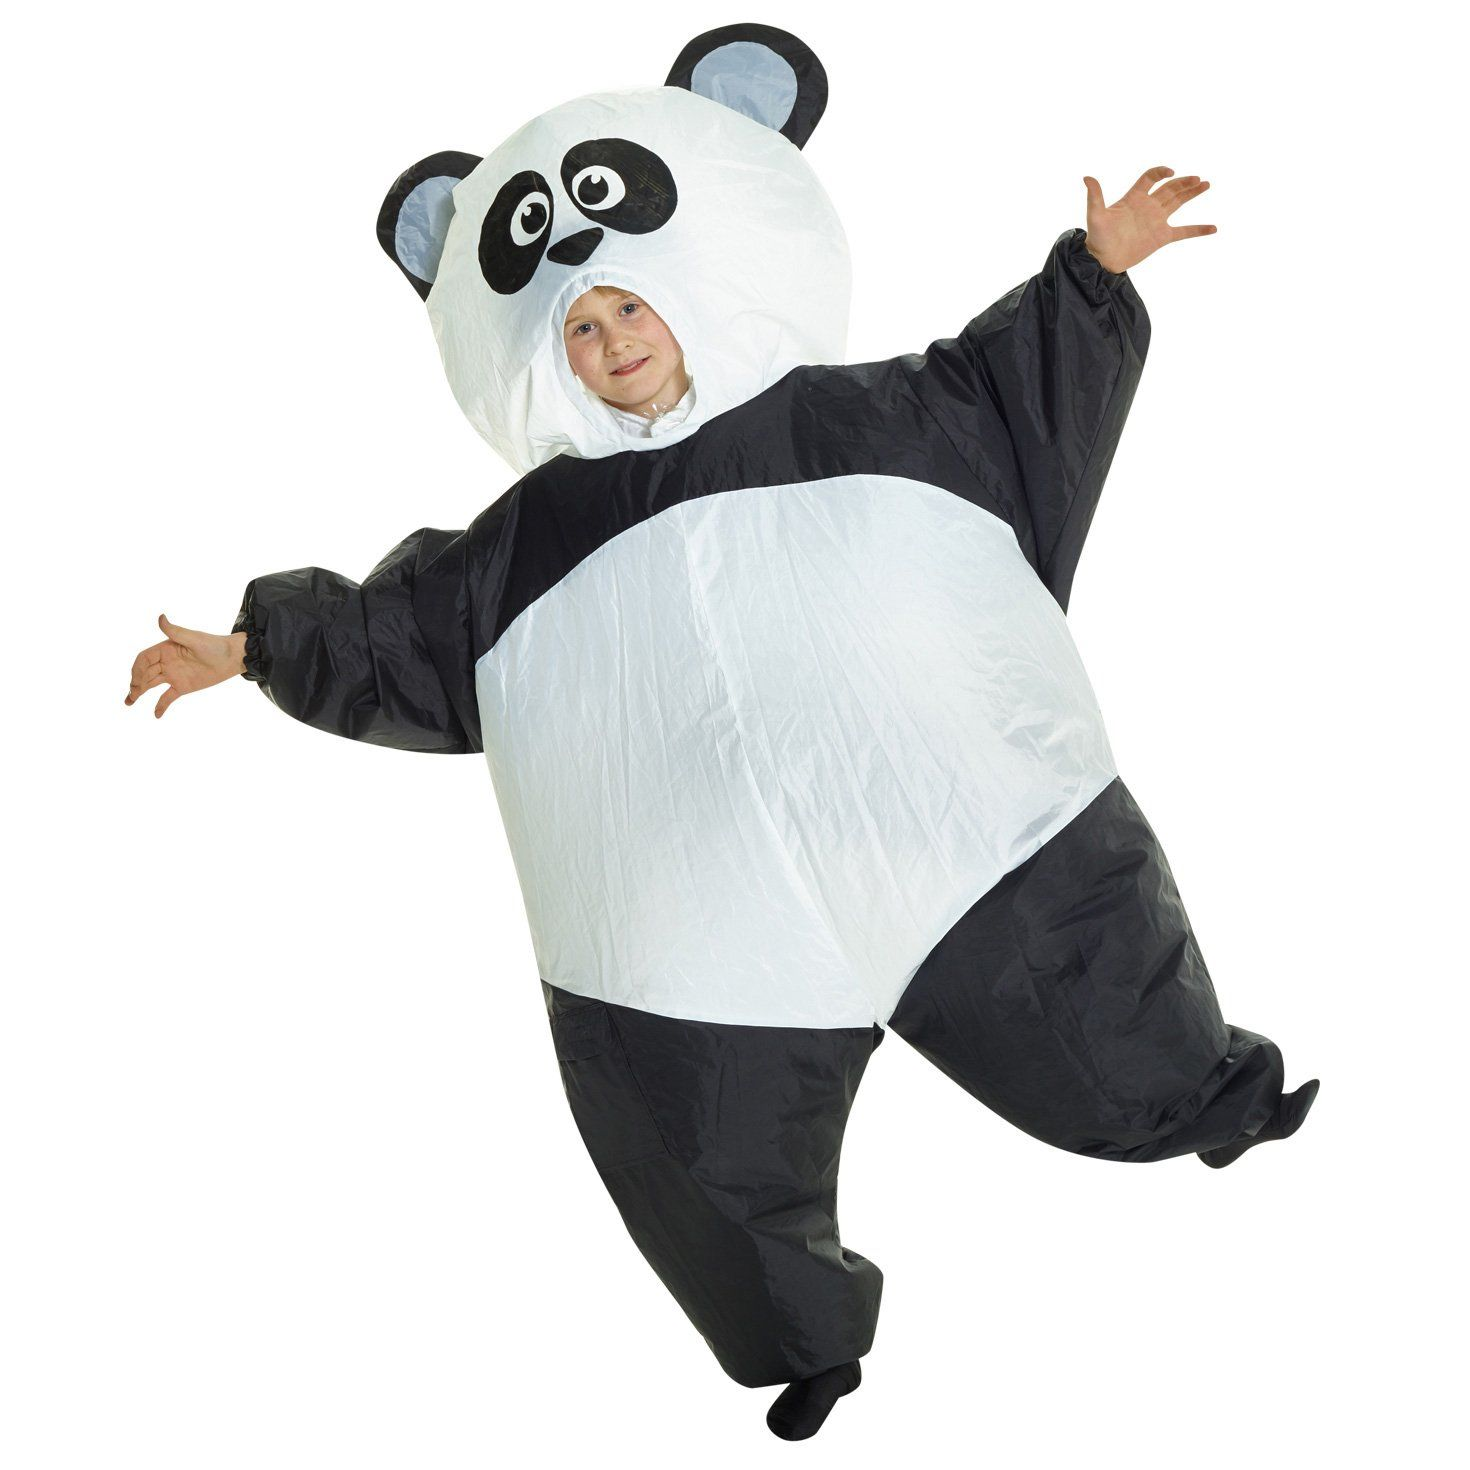 Inflatable Costume Air Blowup Panda Outfit Halloween Cosplay Fancy Dress Up